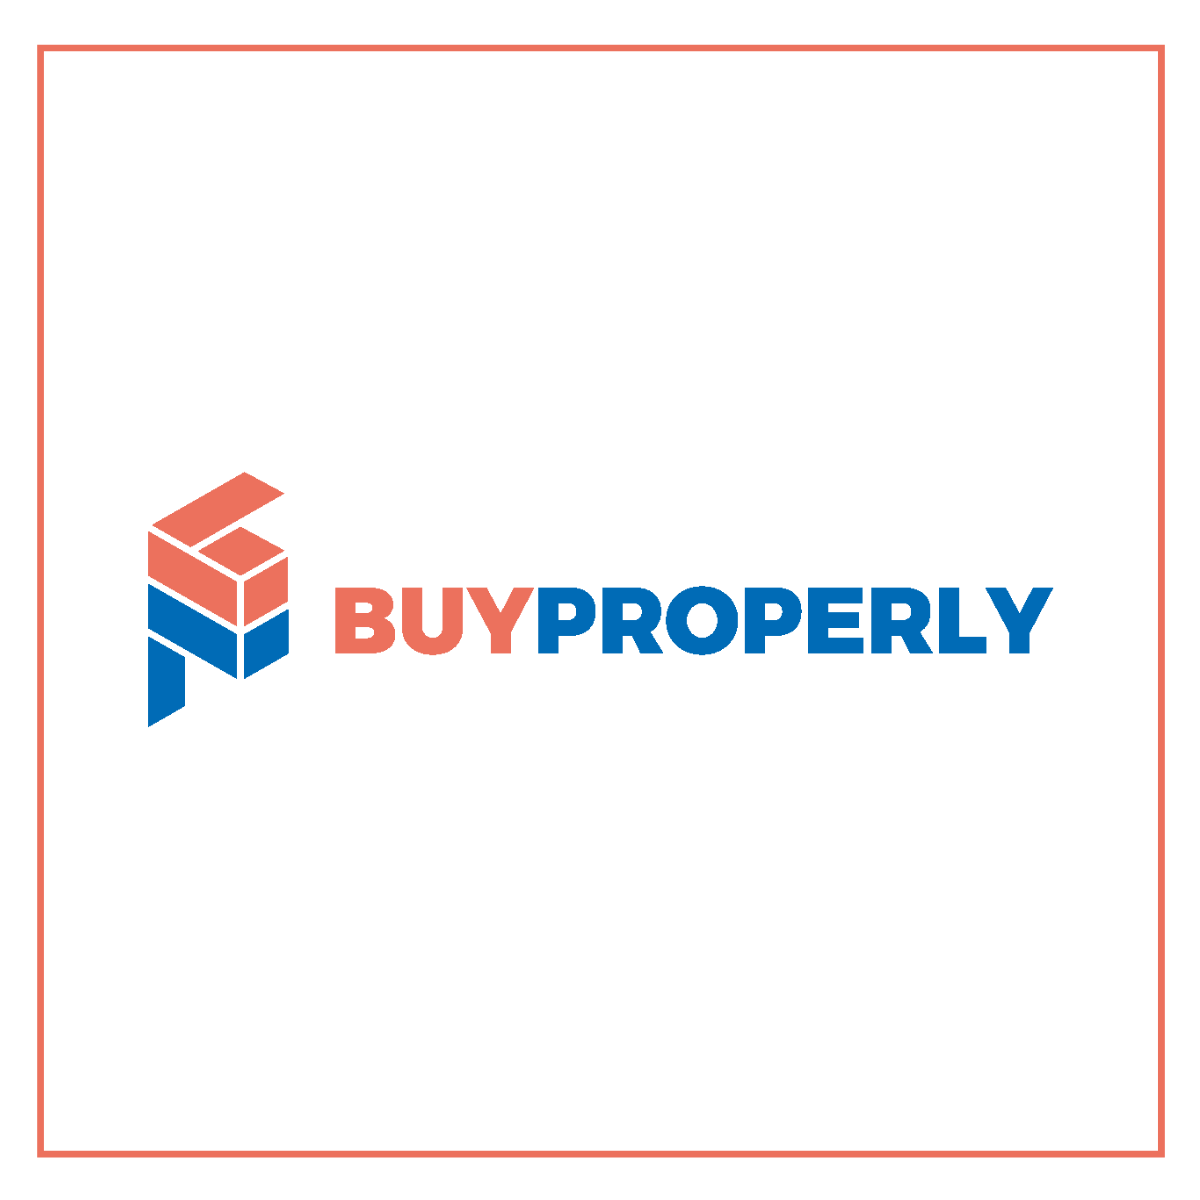 BuyProperly ⎼ Making Real Estate Investing Accessible to Any Investor